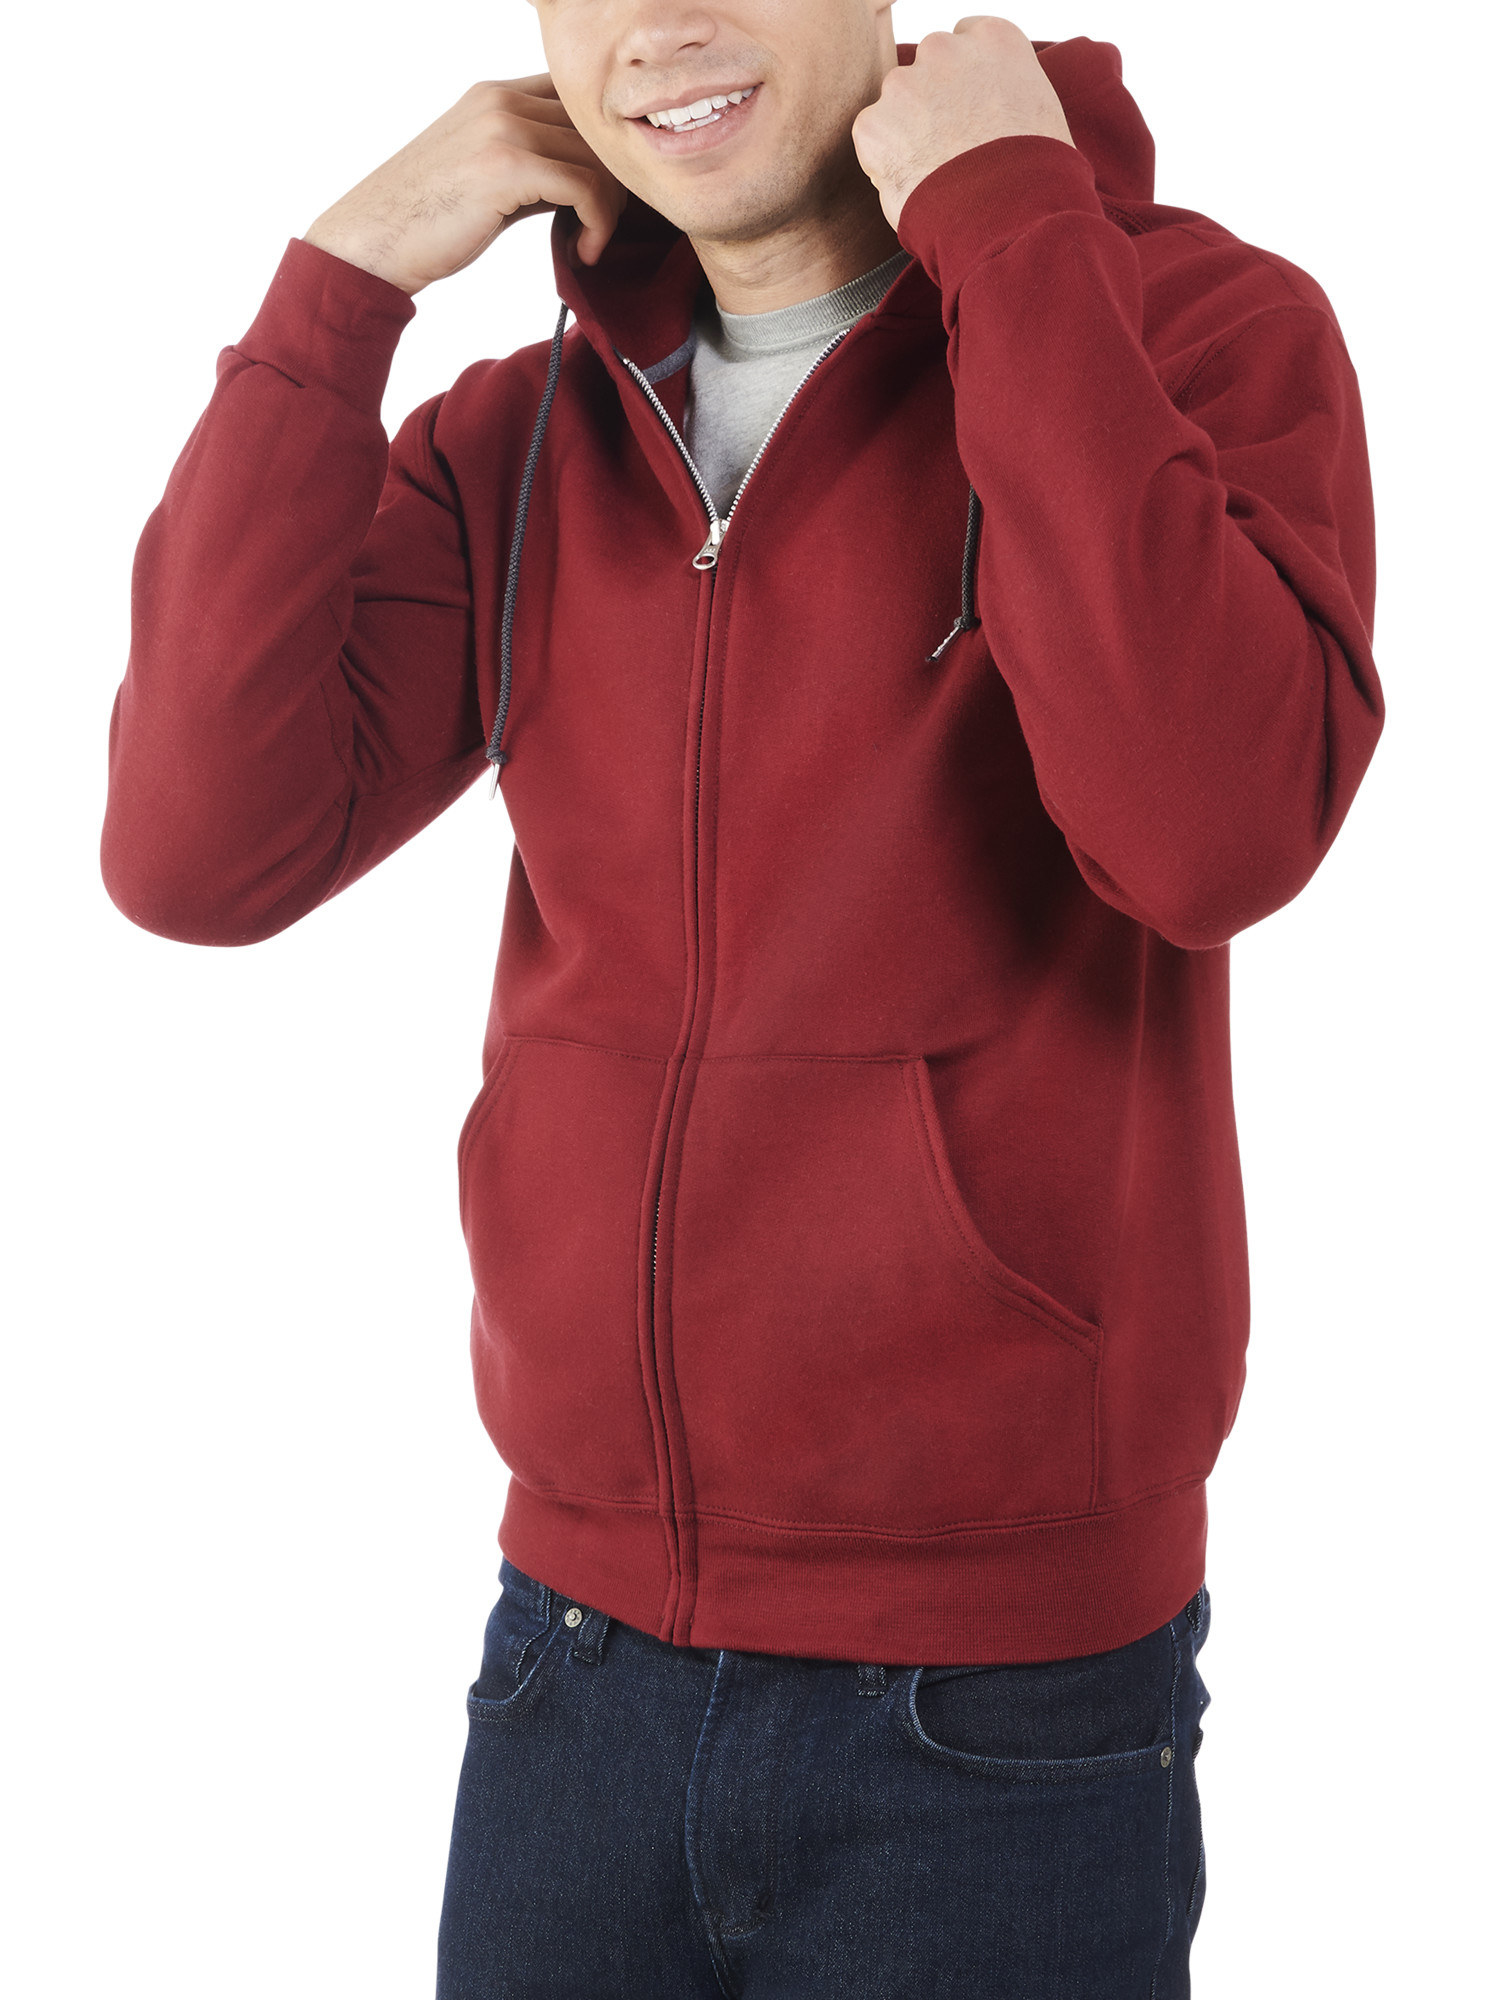 Model wearing a saffron-colored zip-up hoodie